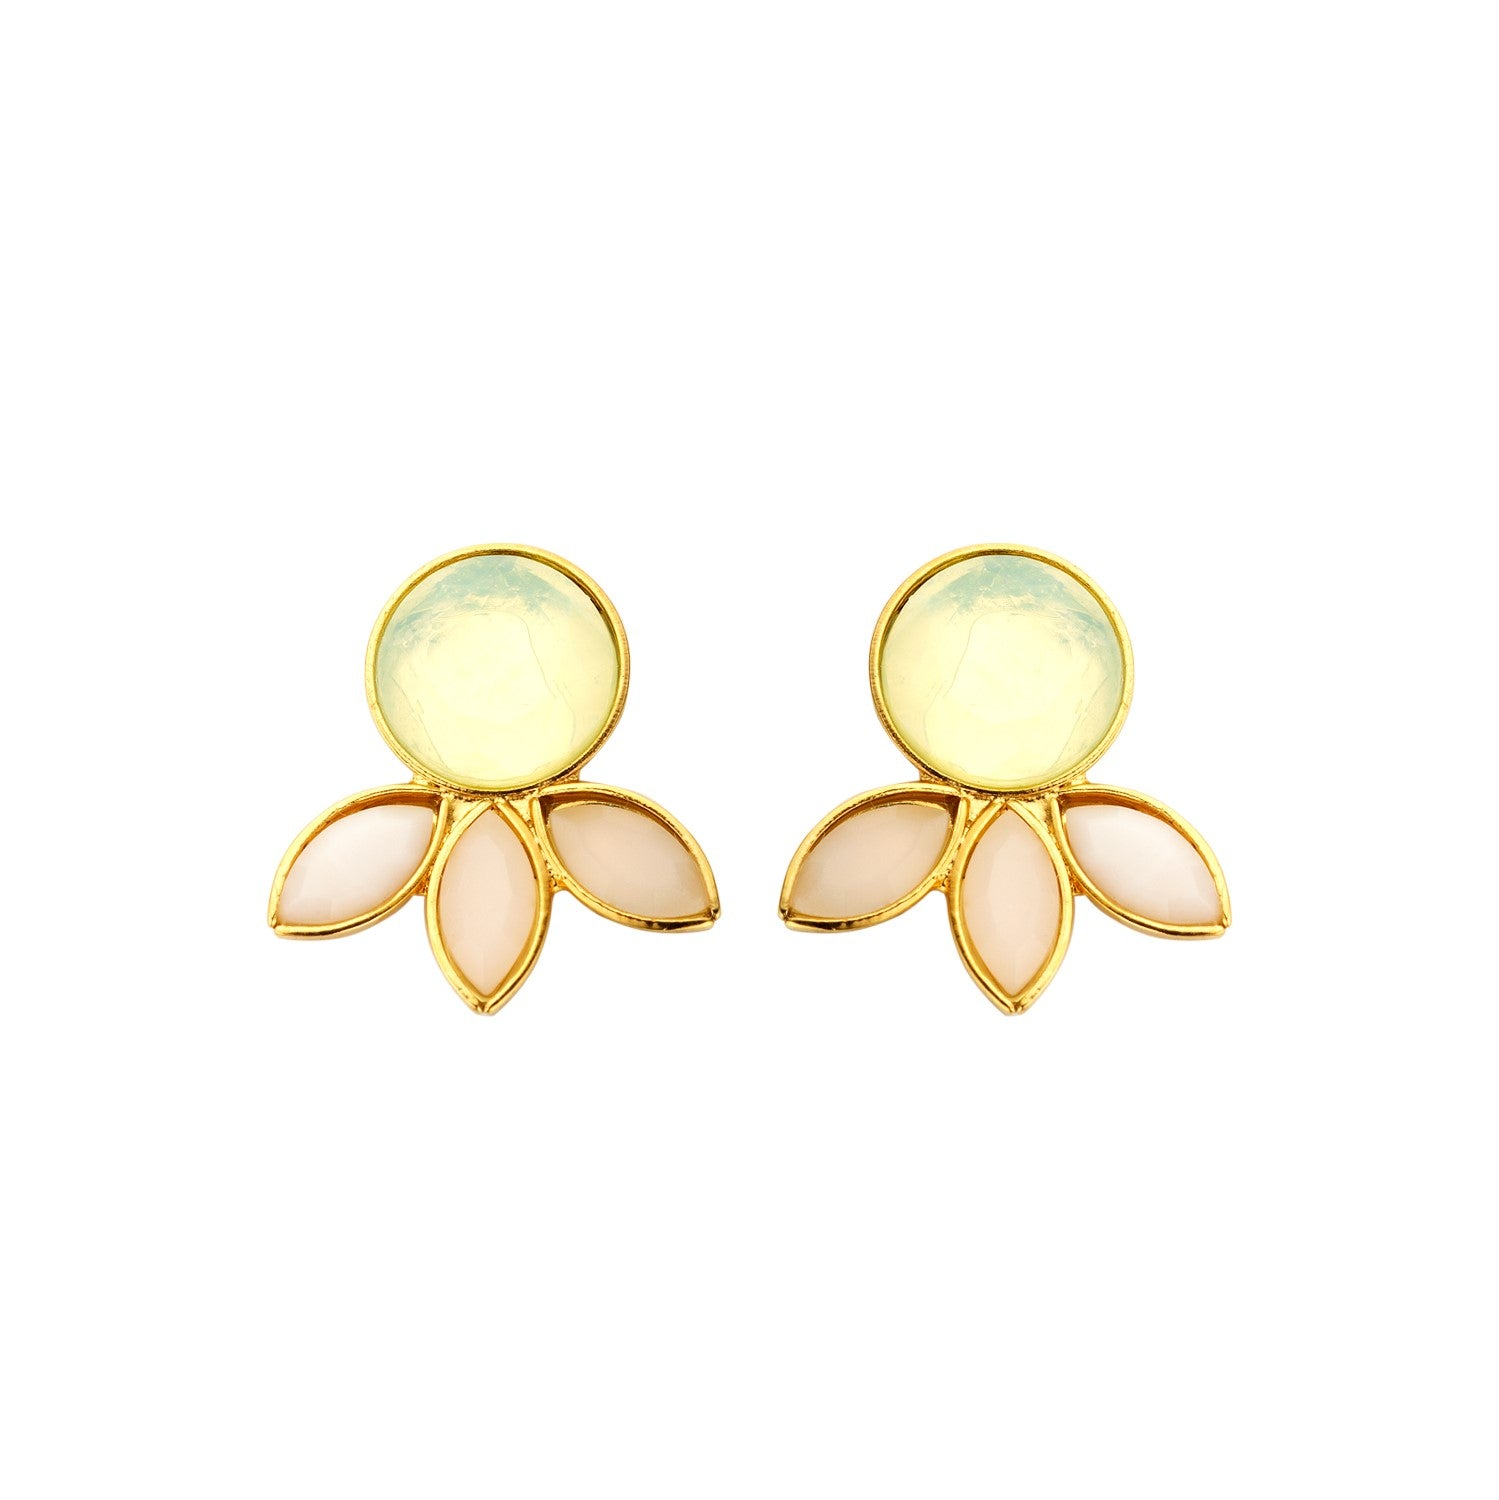 Palm Navet milk white earrings - Souvenirs de Pomme